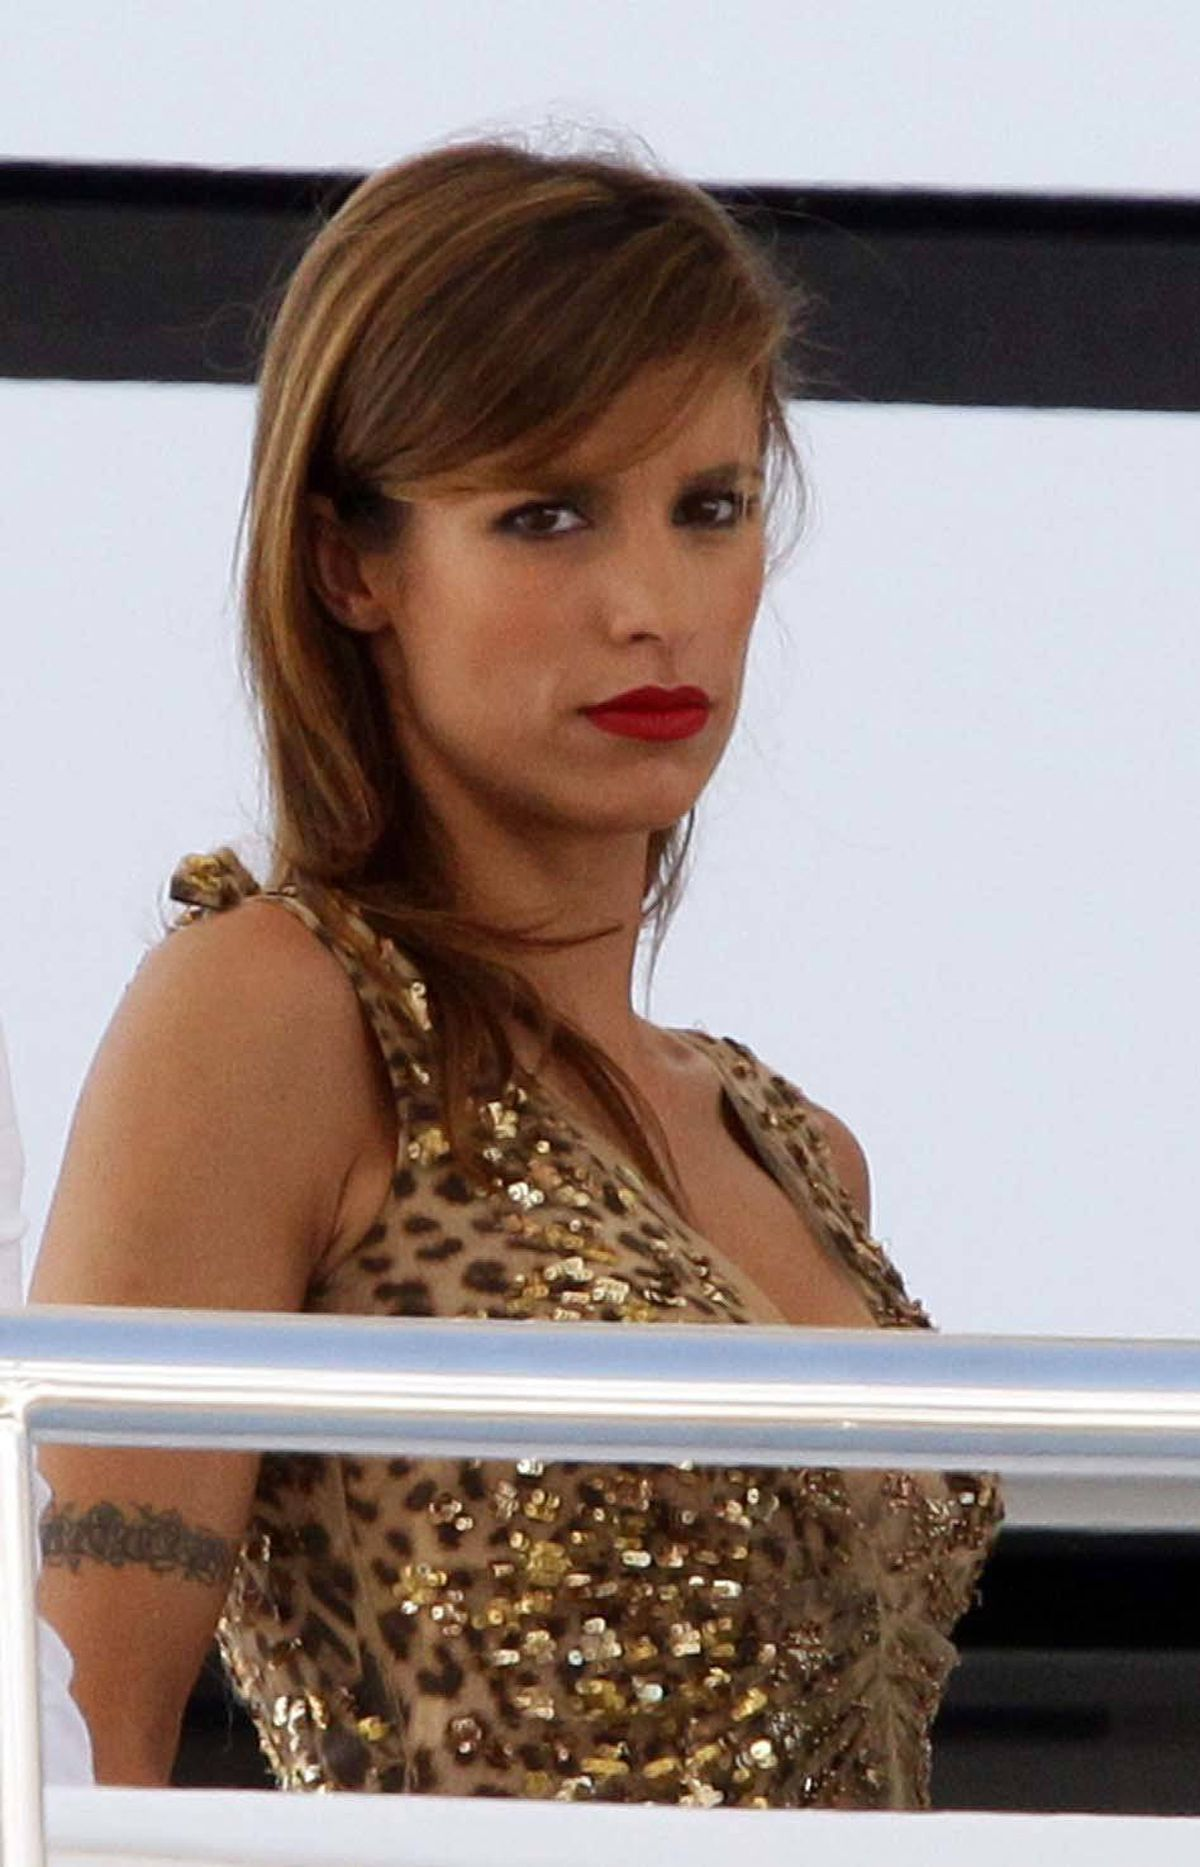 Pouty Elisabetta Canalis is at the Cannes Film Festival and mssing her boyfriend.